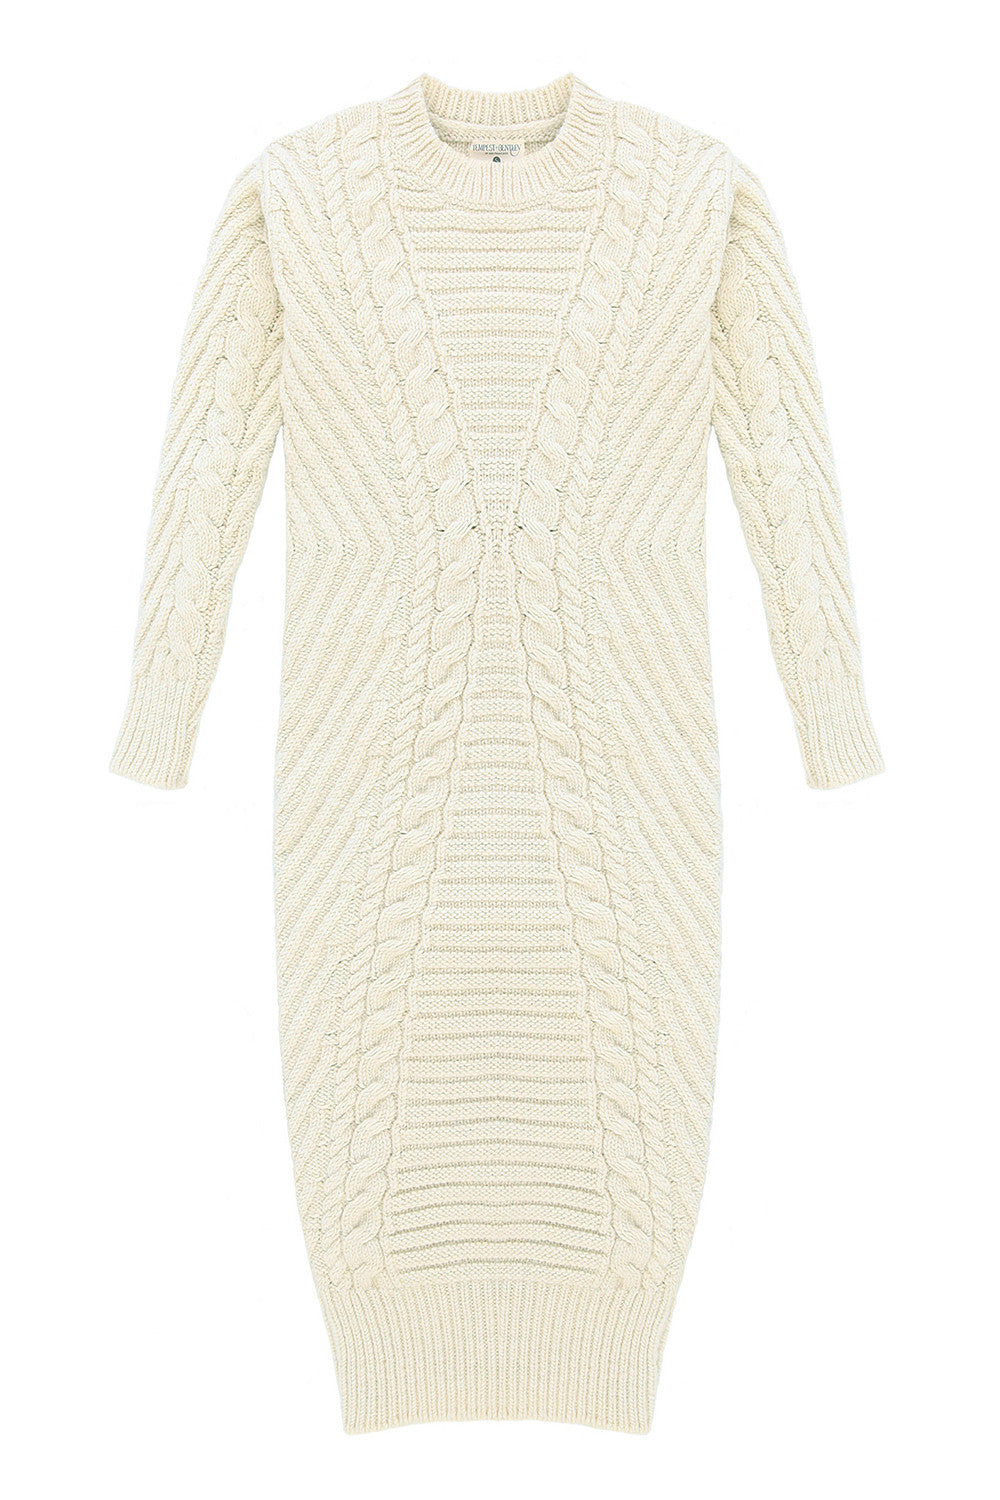 Mt. Tam Sweater Dress in Natural